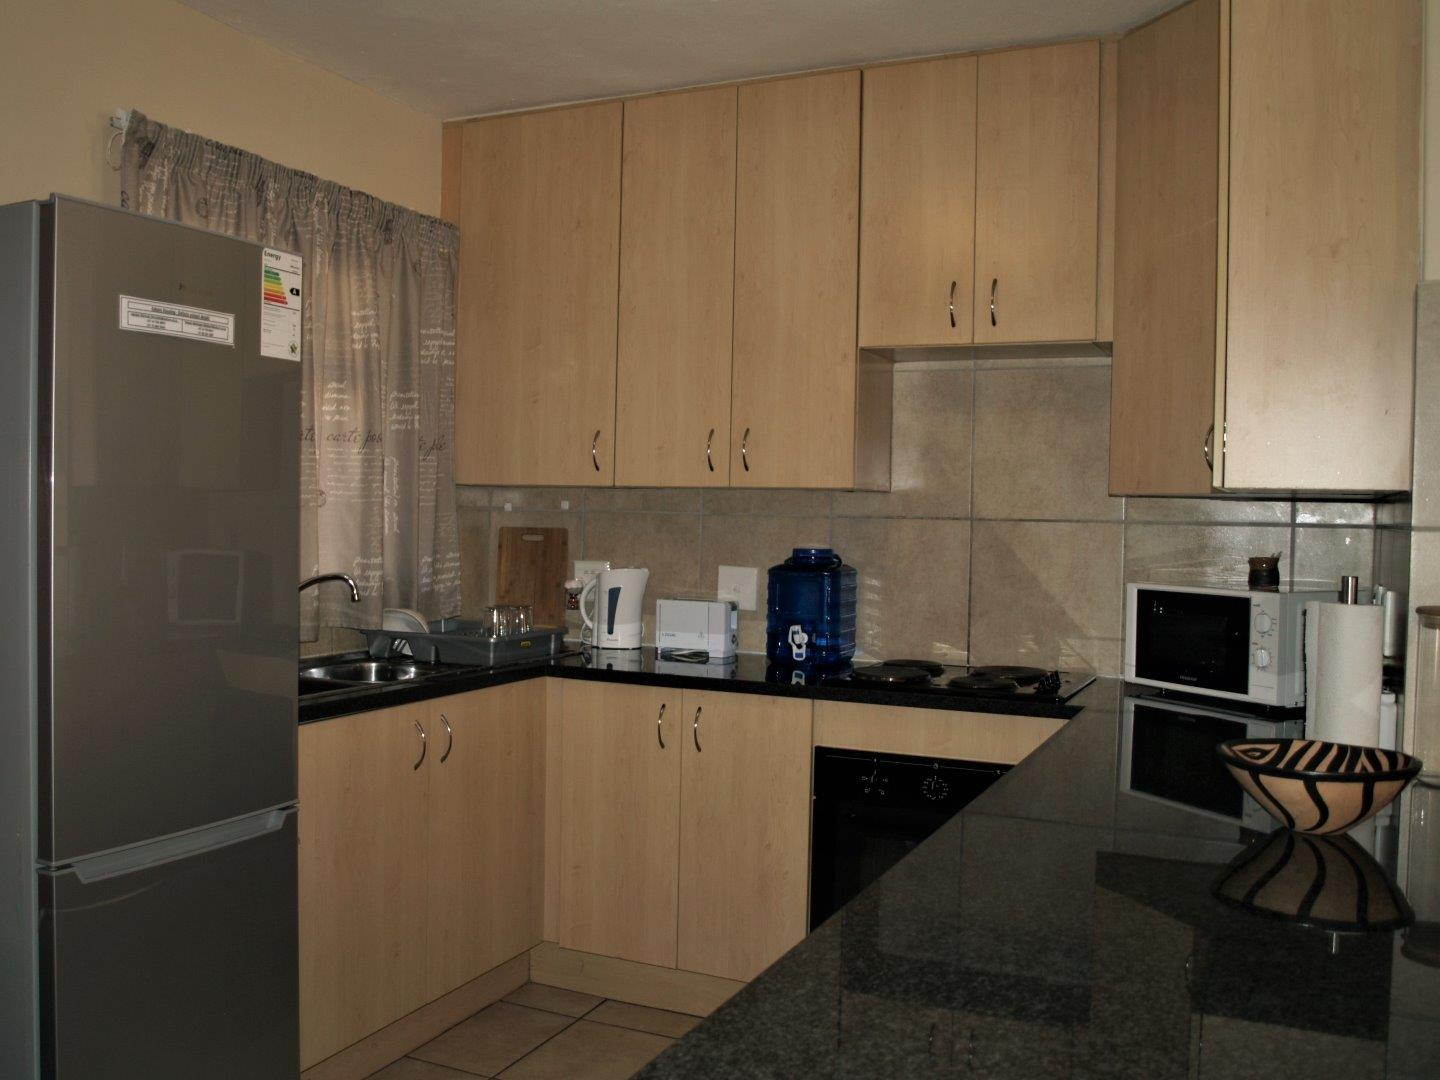 2 Bedroom Apartment for Sale in Onverwacht, Lephalale - Limpopo